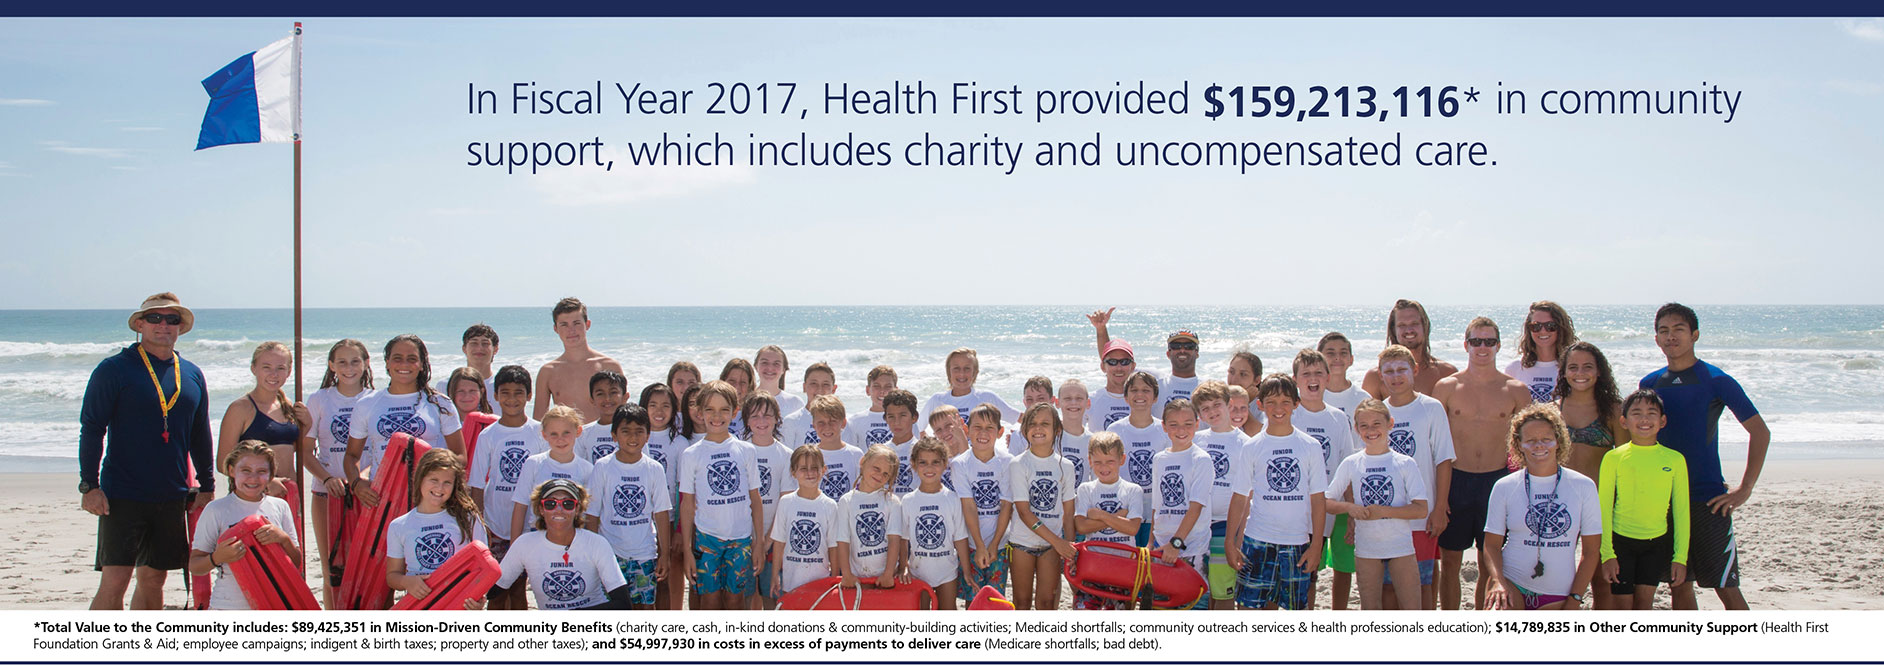 Health First Gives Back - In Fiscal Year 2017, Health First provided $159,213,116* in community support, which includes charity and uncompensated care.